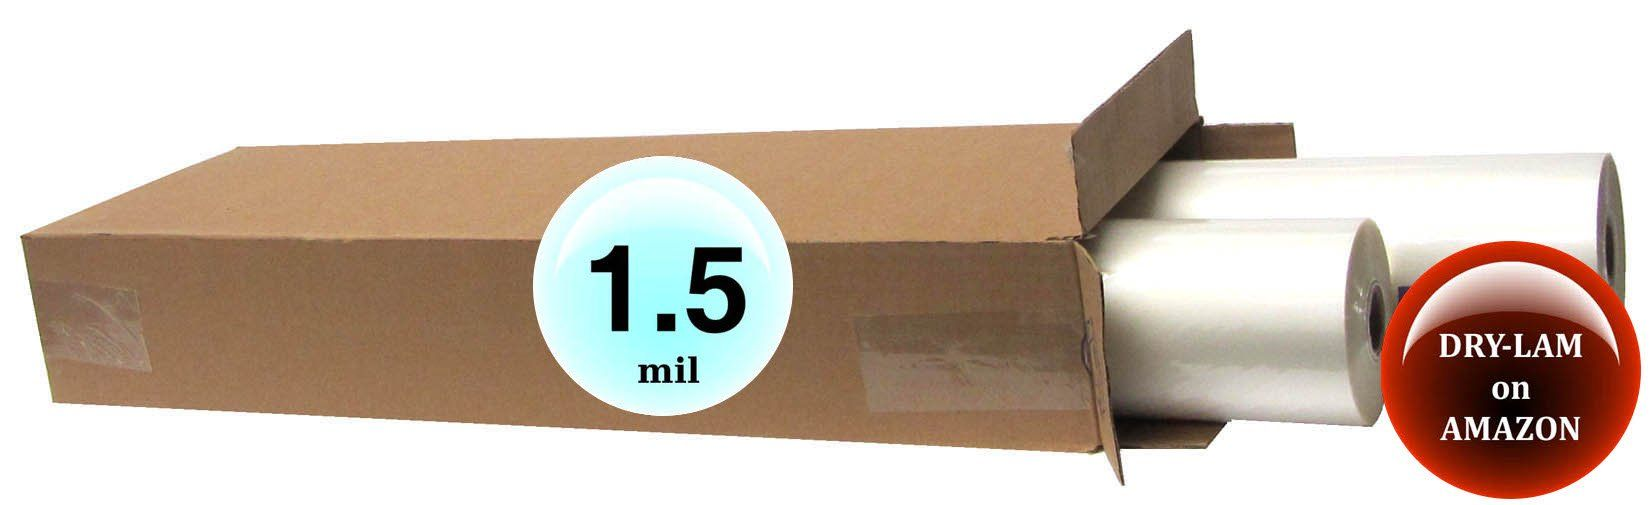 Qty 4 Rolls Drylam Standard Laminating Film 27 X 500 1 5 Mil 1 Core Read More Details By Cli Wholesale Craft Supplies Craft Supplies Storing Craft Supplies